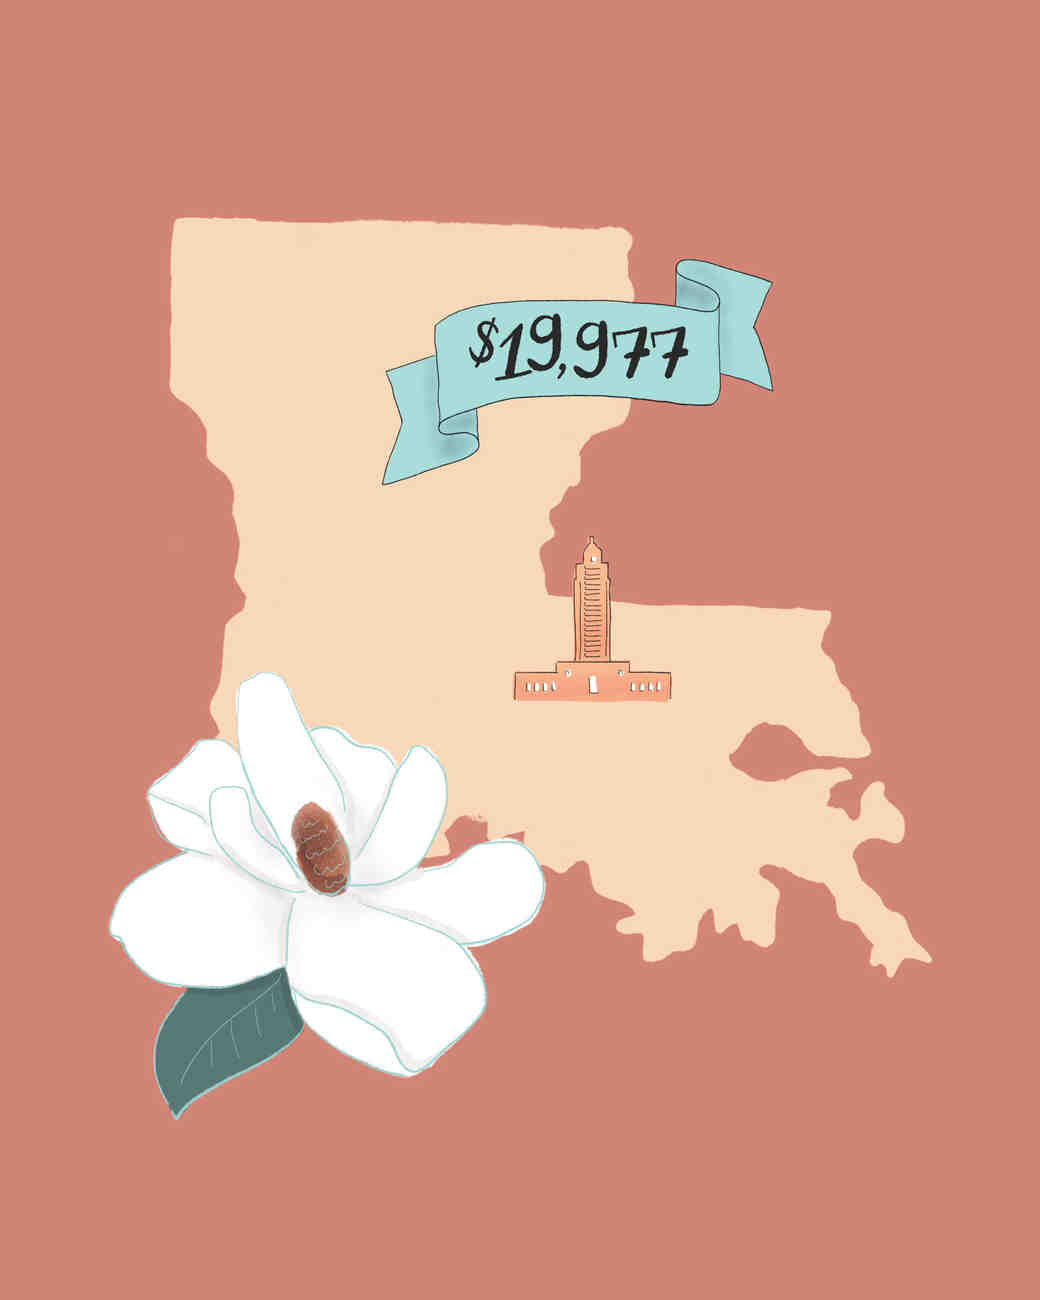 state wedding costs illustration louisiana